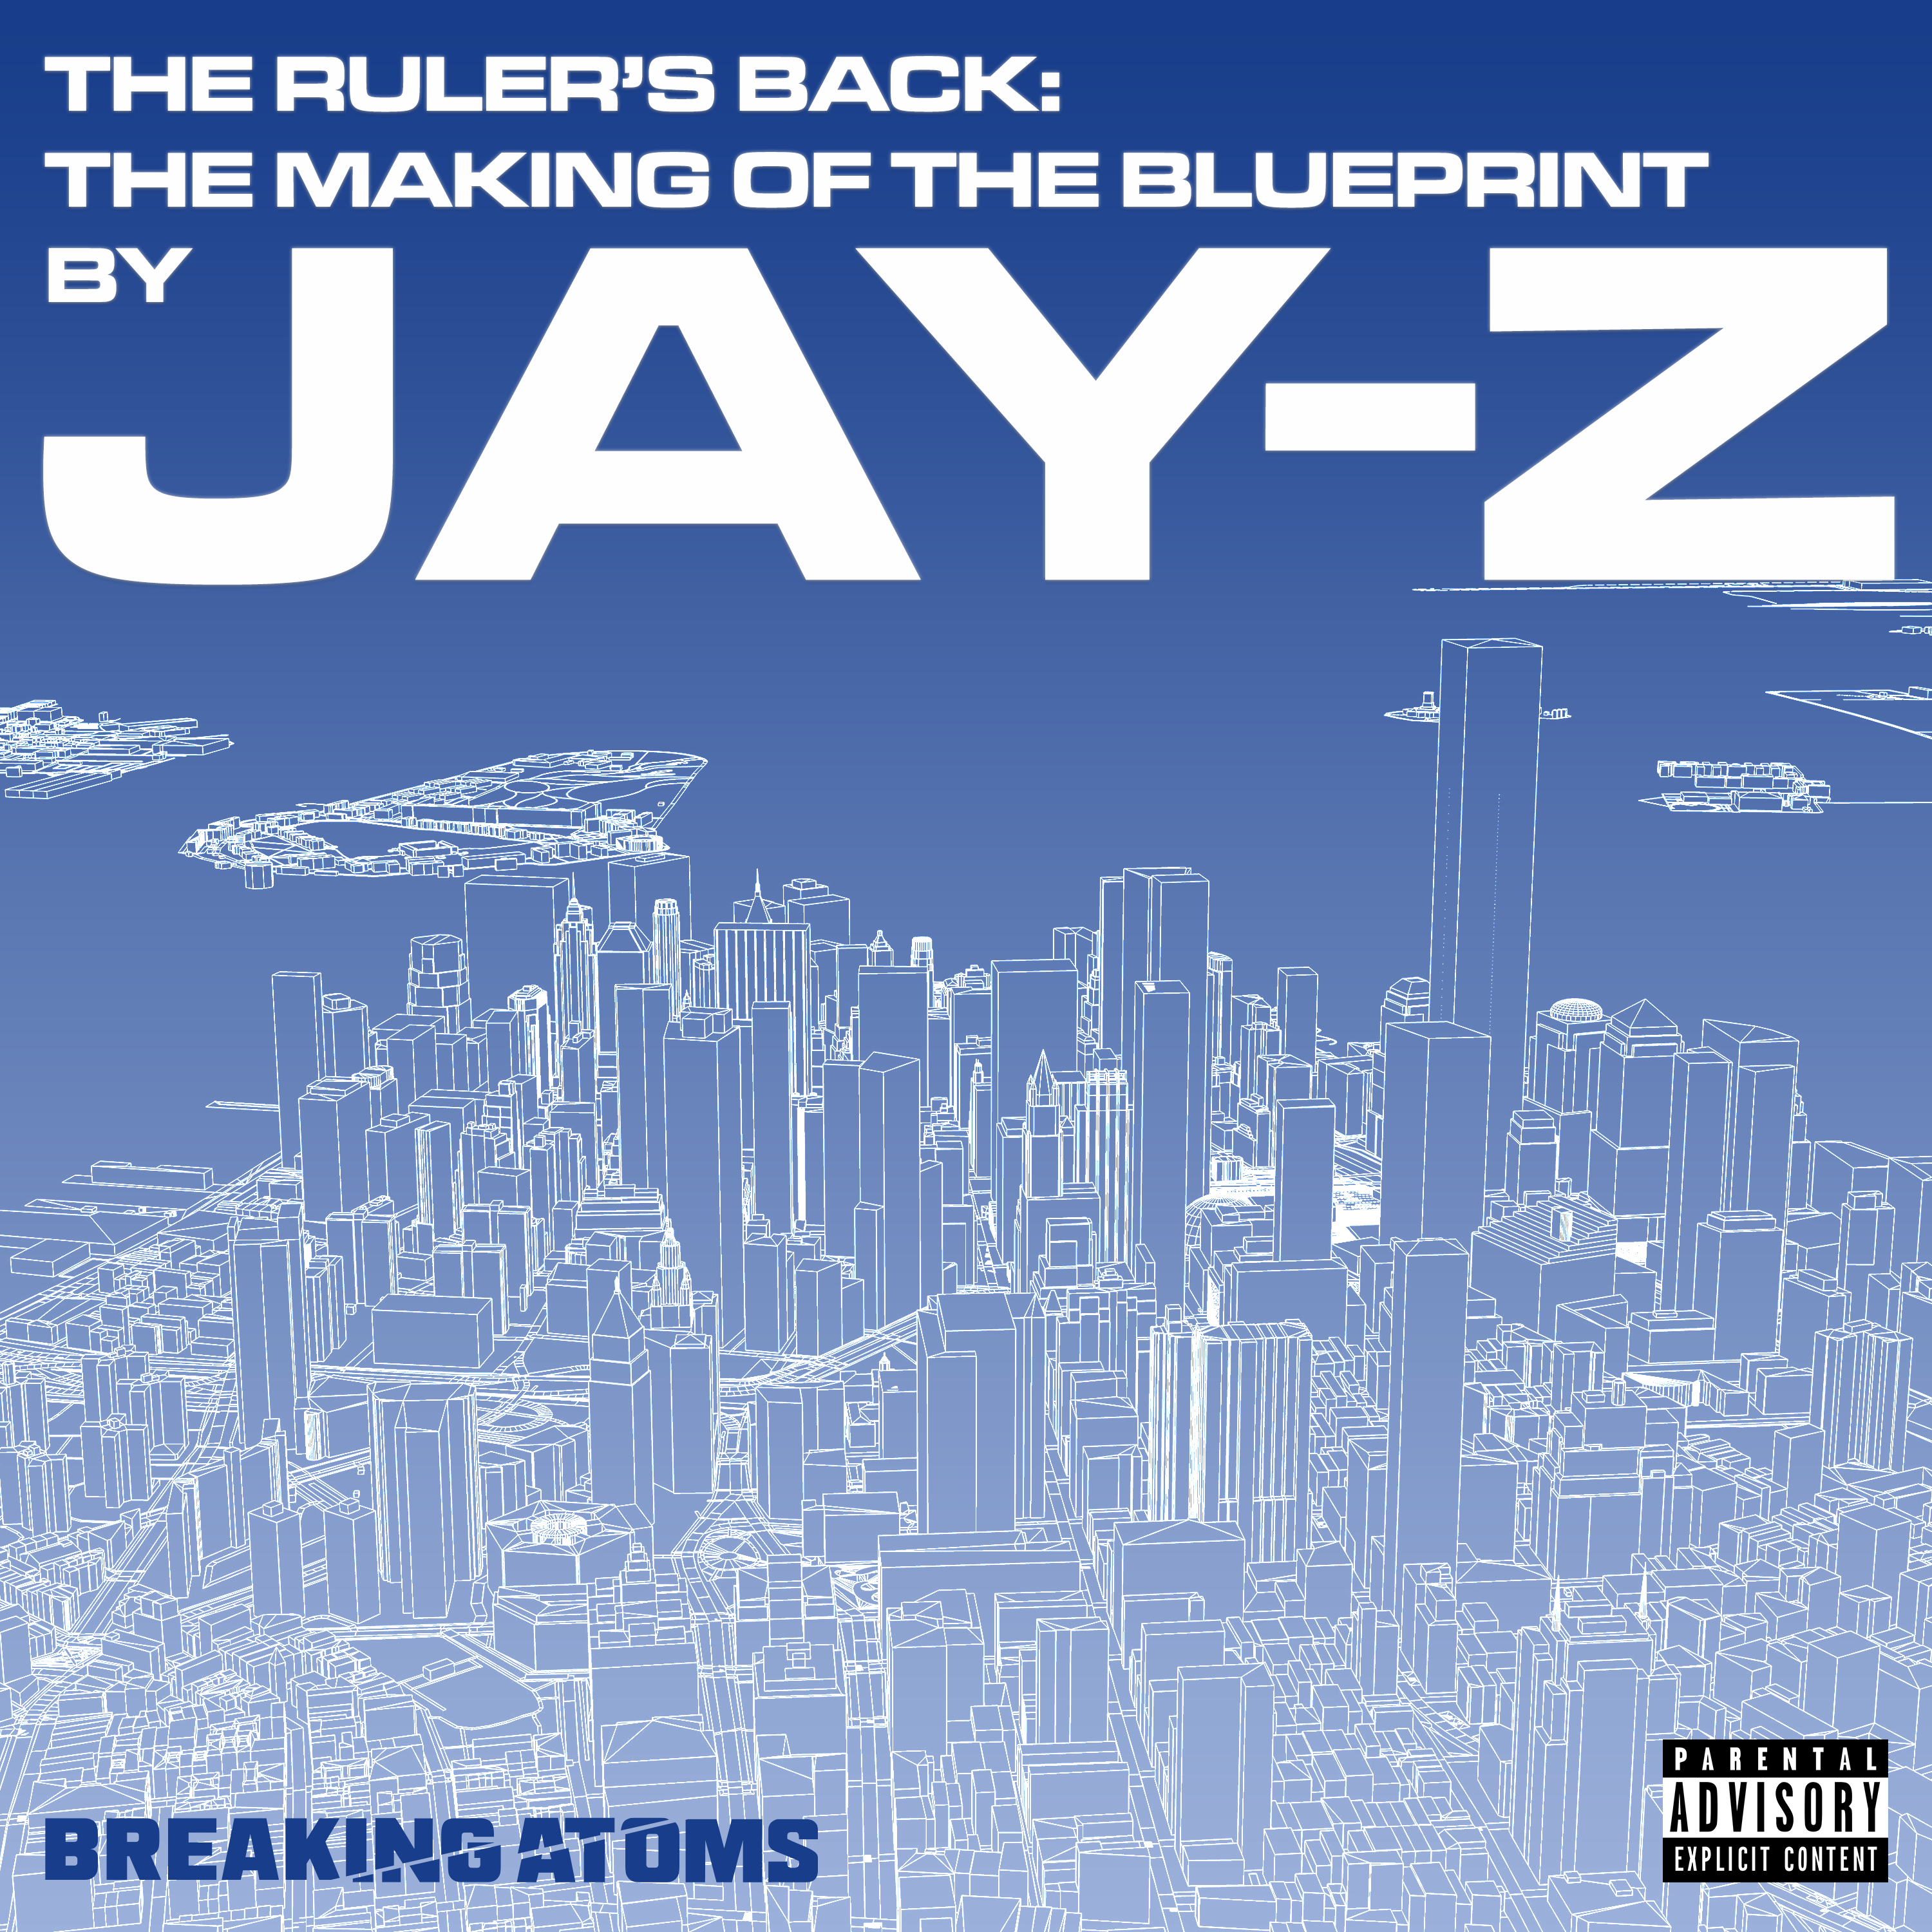 Ep. 2: Takeover | The Ruler's Back: The Making of The Blueprint by Jay-Z